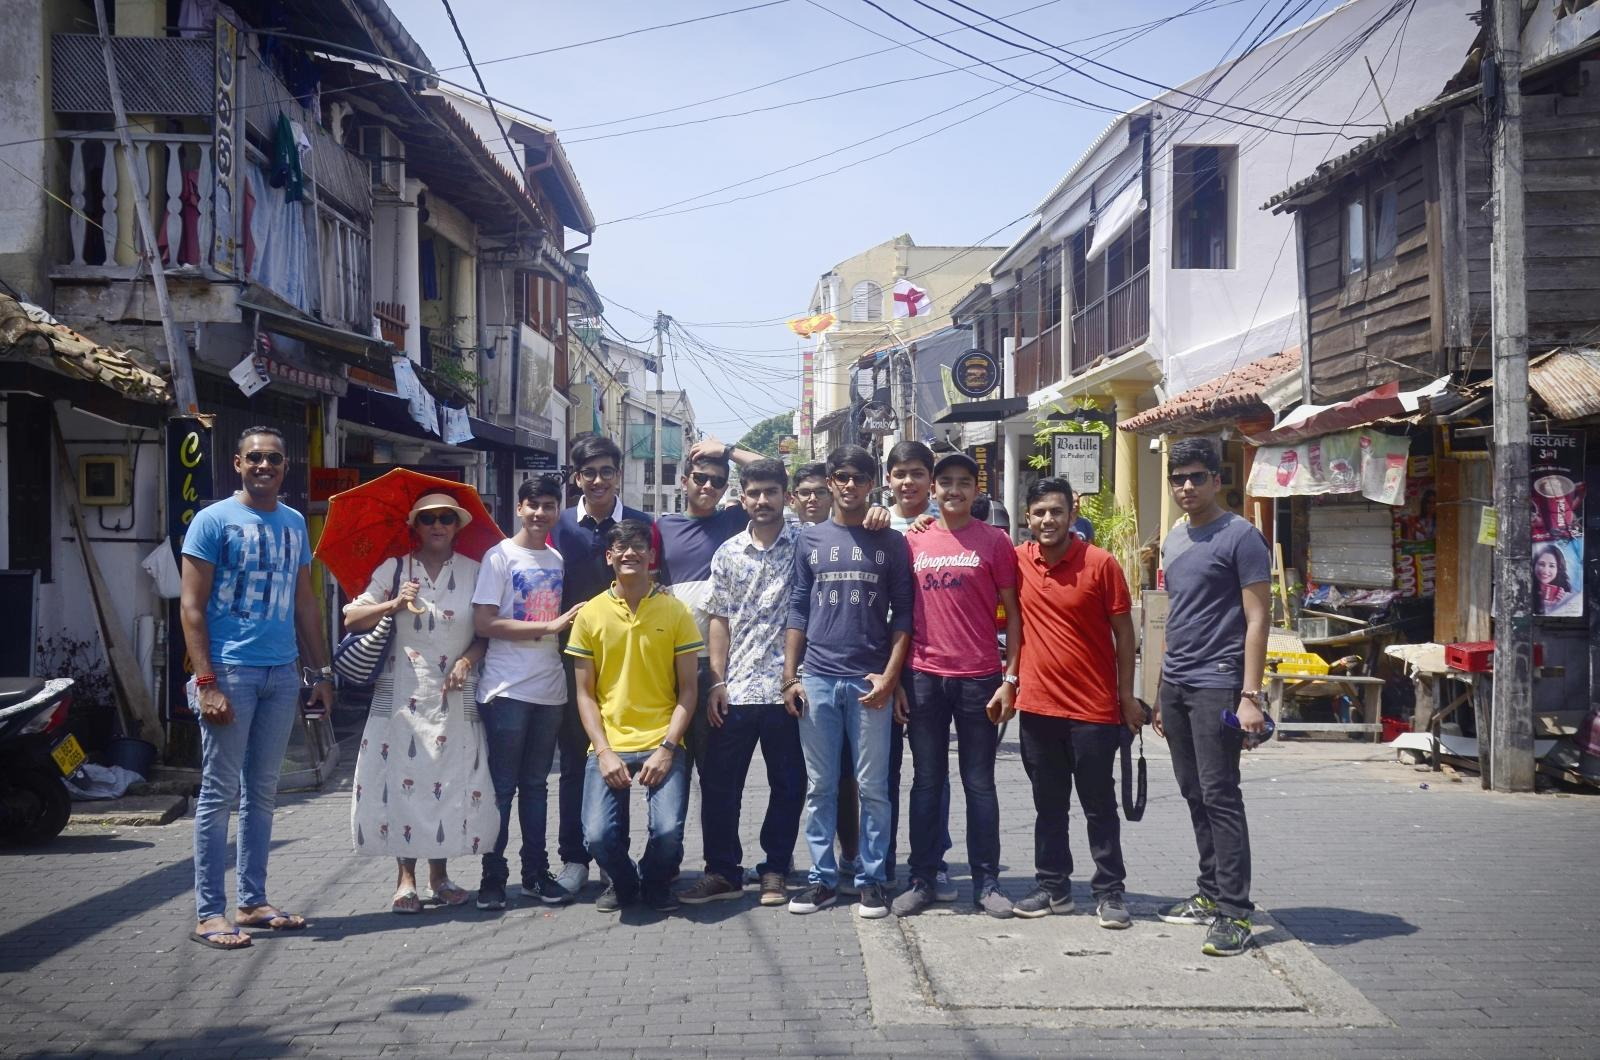 A group of Indian students is posing in the street during their tailor made volunteering trip abroad with Projects Abroad.